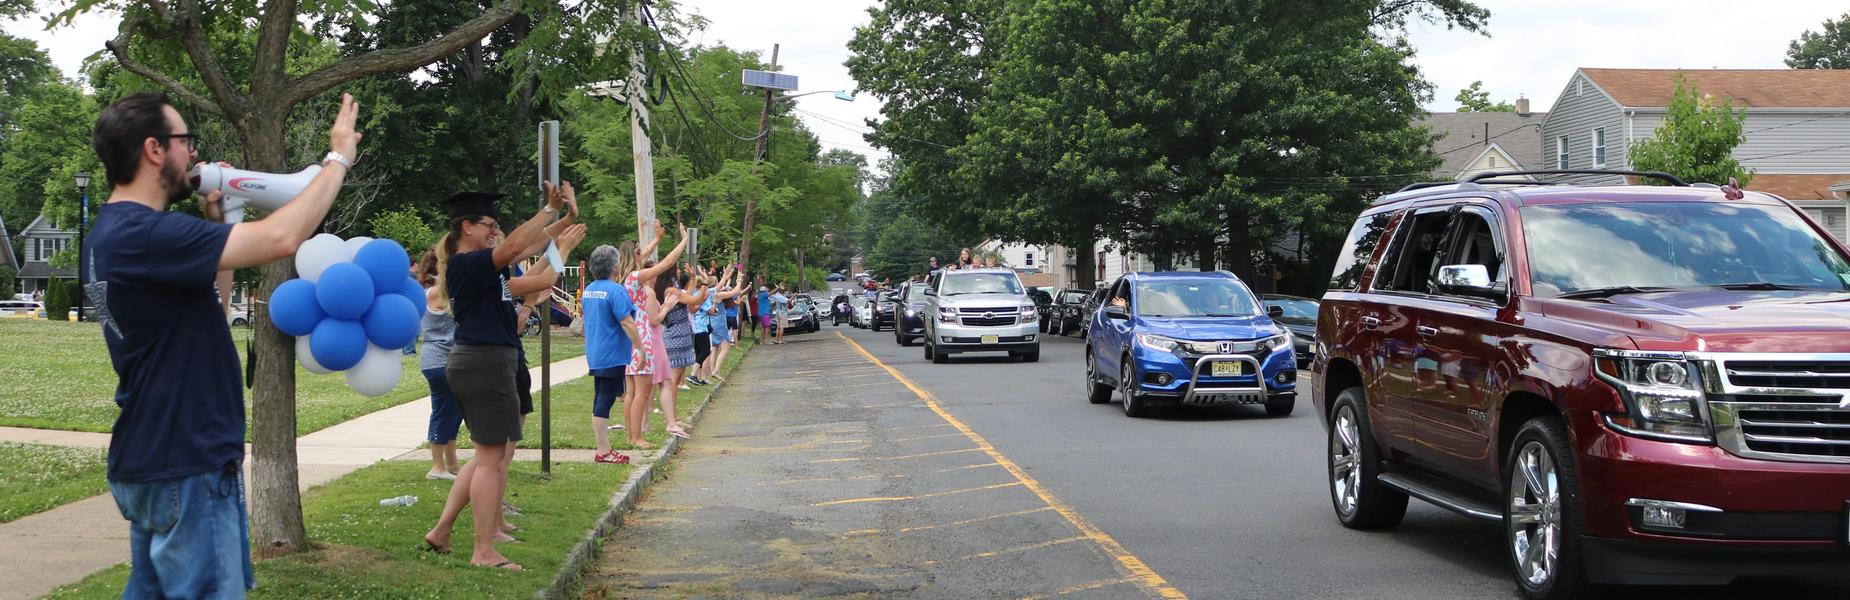 Photo of McKinley staff waving to 5th graders during Grade 5 Clap Out Car Parade.